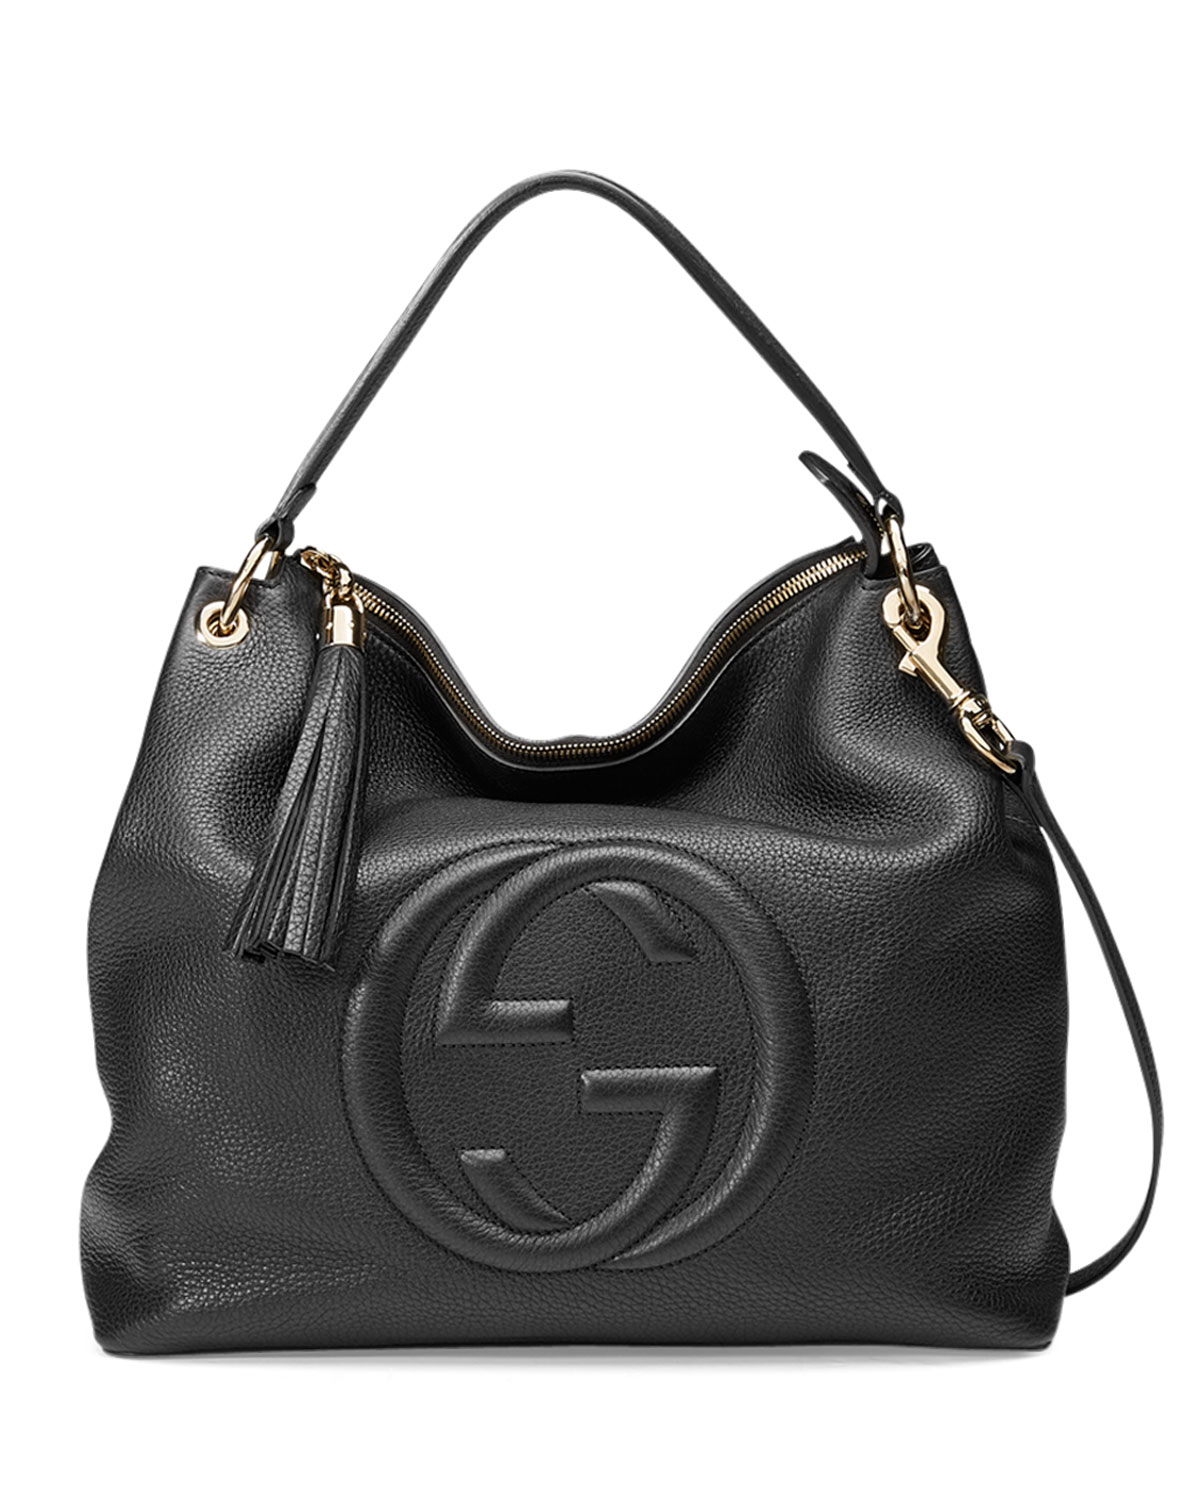 aa1ae862d9d Gucci Soho Large Leather Hobo Bag